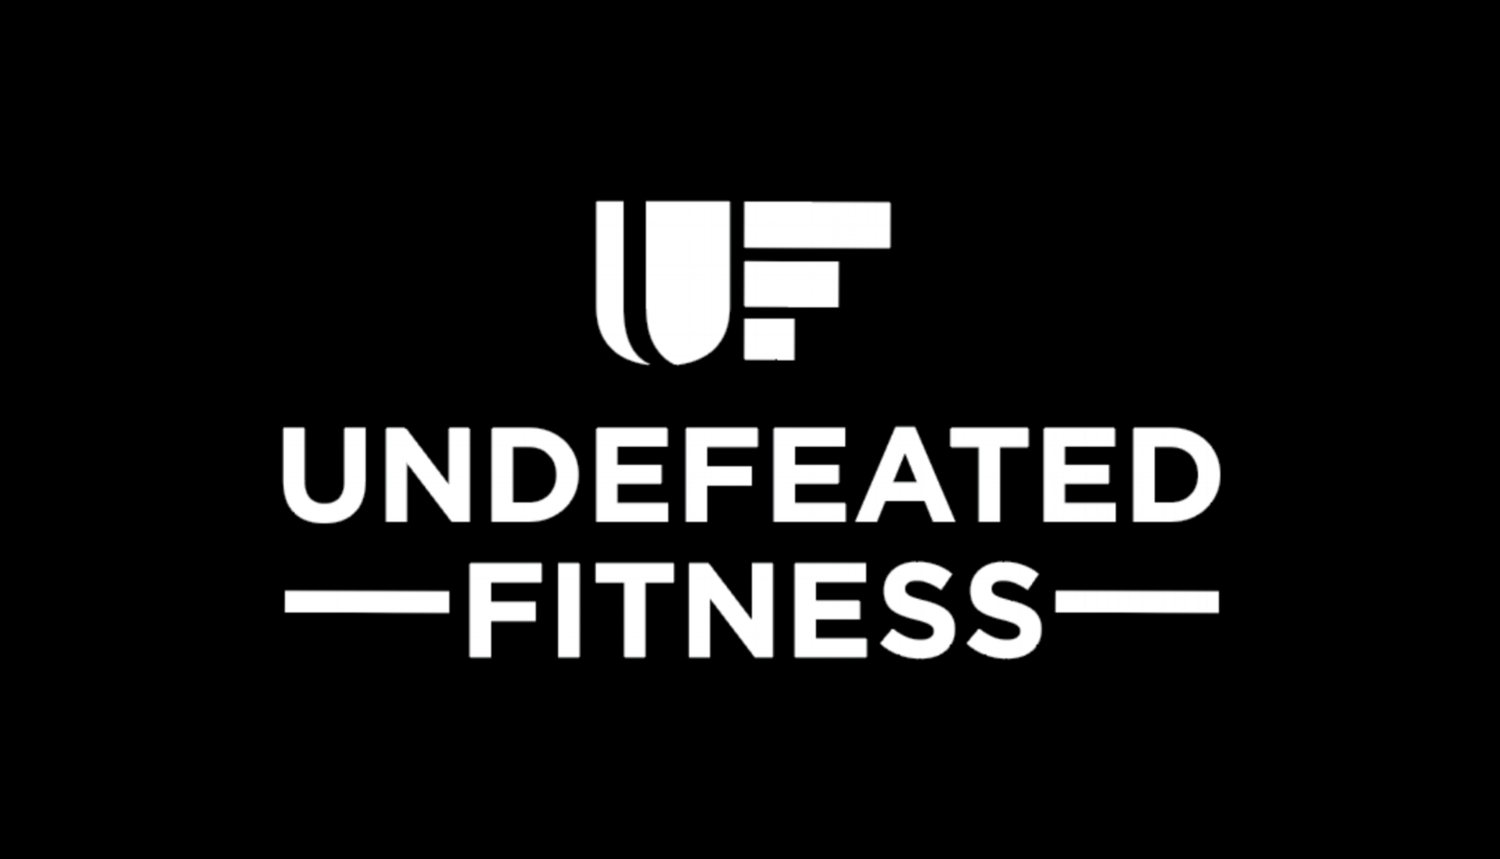 Undefeated Fitness/ Personal Training Strength Training 7160 Miramar Rd. San Diego, CA 92121